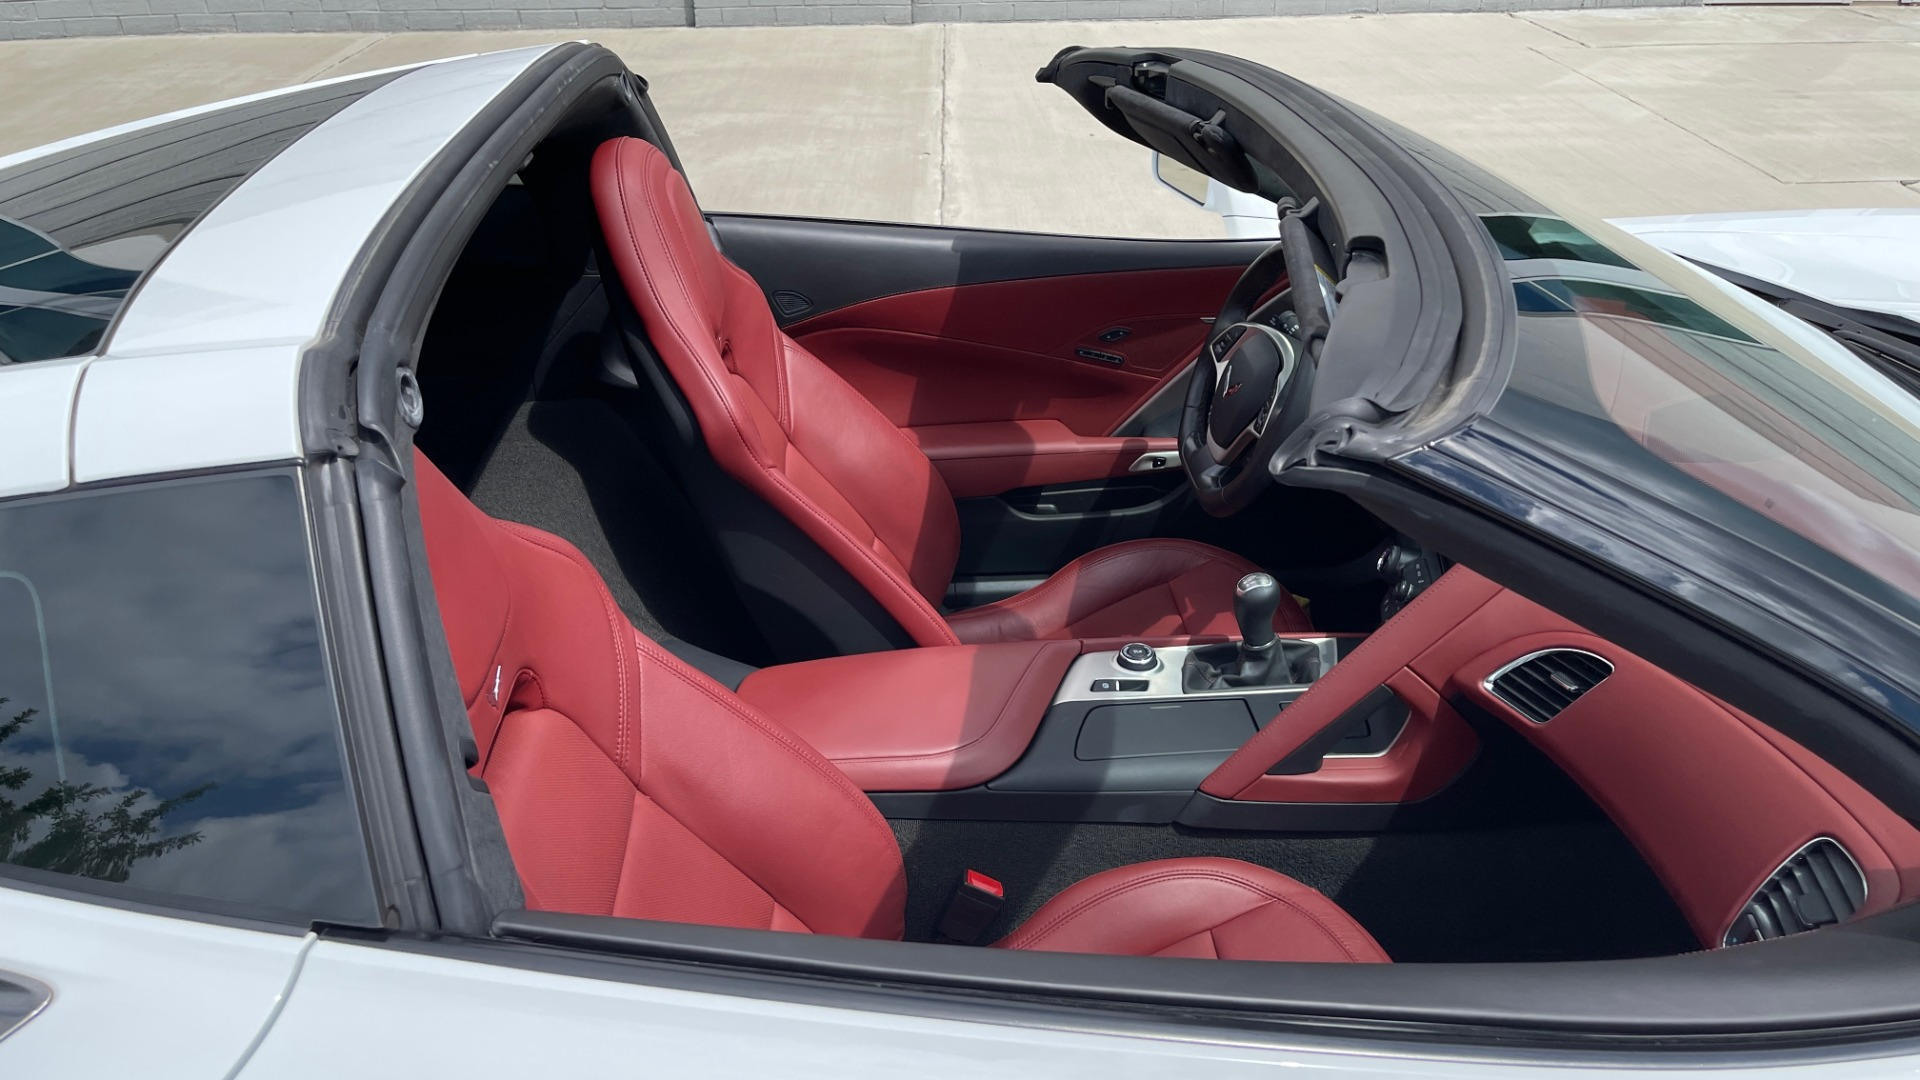 Used 2016 Chevrolet CORVETTE C7 STINGRAY COUPE Z51 3LT / NAV / PERF TRACTION MGMT / REARVIEW for sale Sold at Formula Imports in Charlotte NC 28227 65